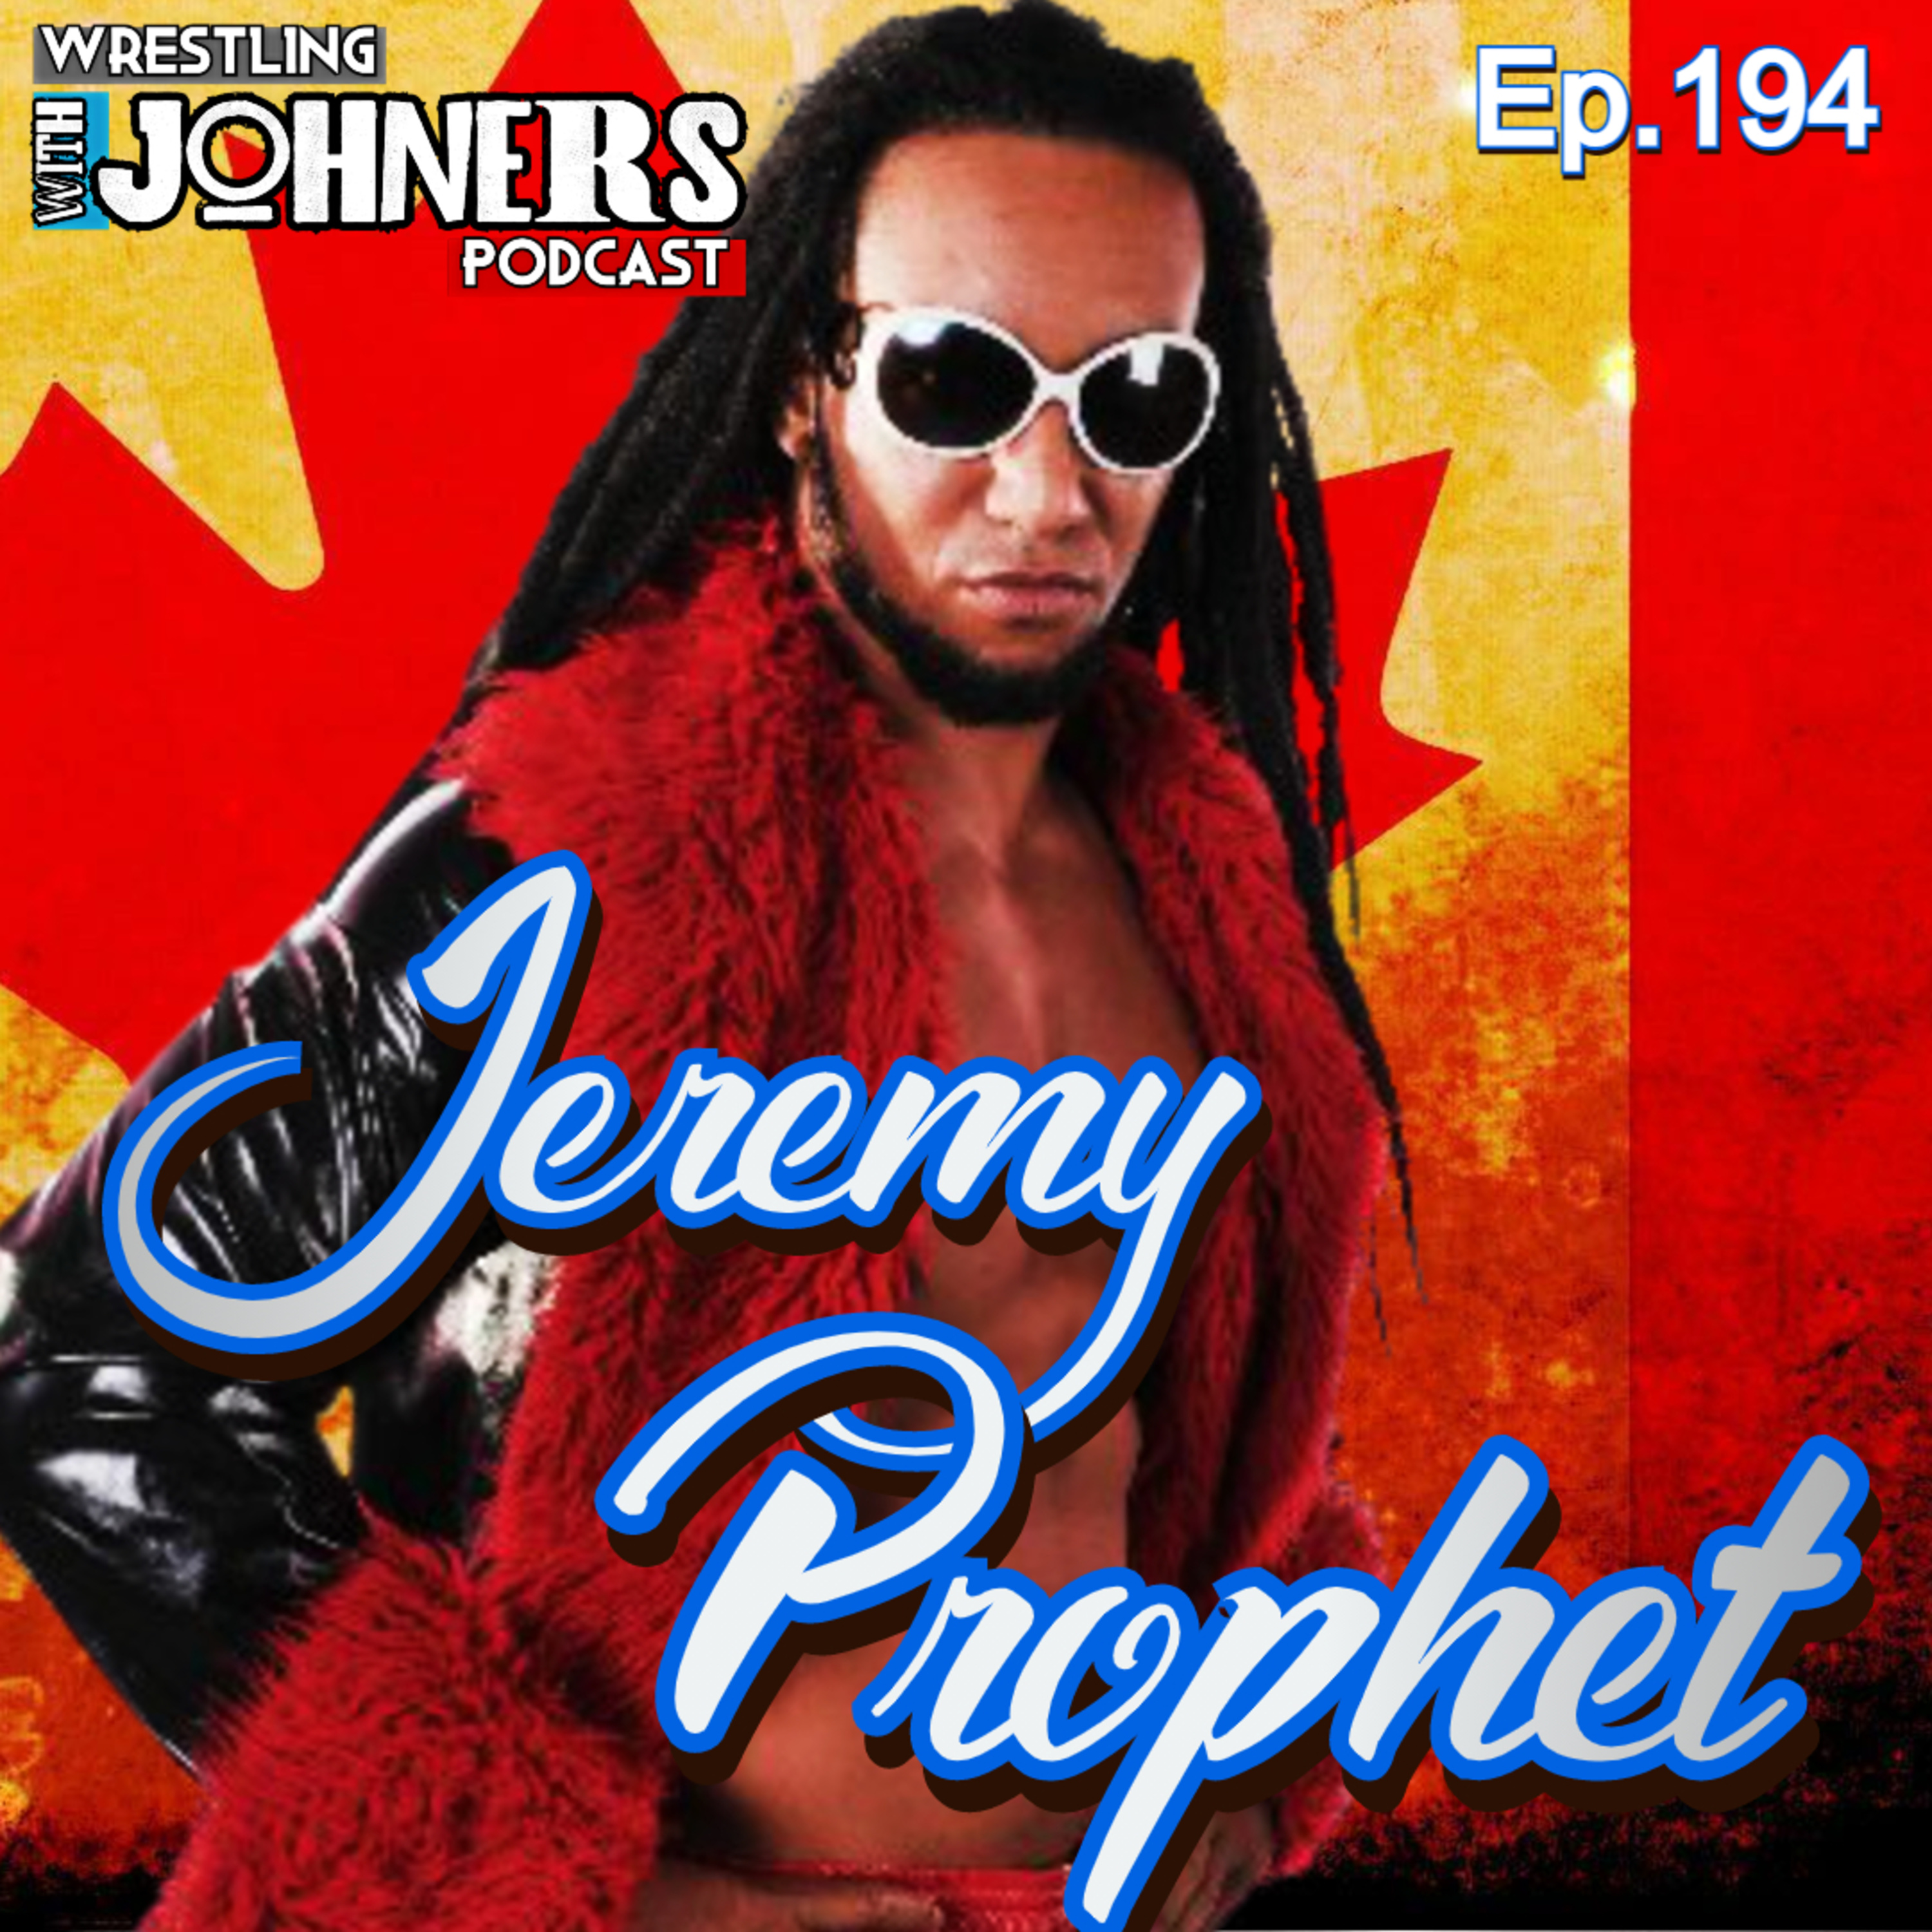 Ep194 - 'The Harbinger of Truth' Jeremy Prophet (Jericho Award winner, PCO, WWE Try-Out, the Canadian wrestling scene)